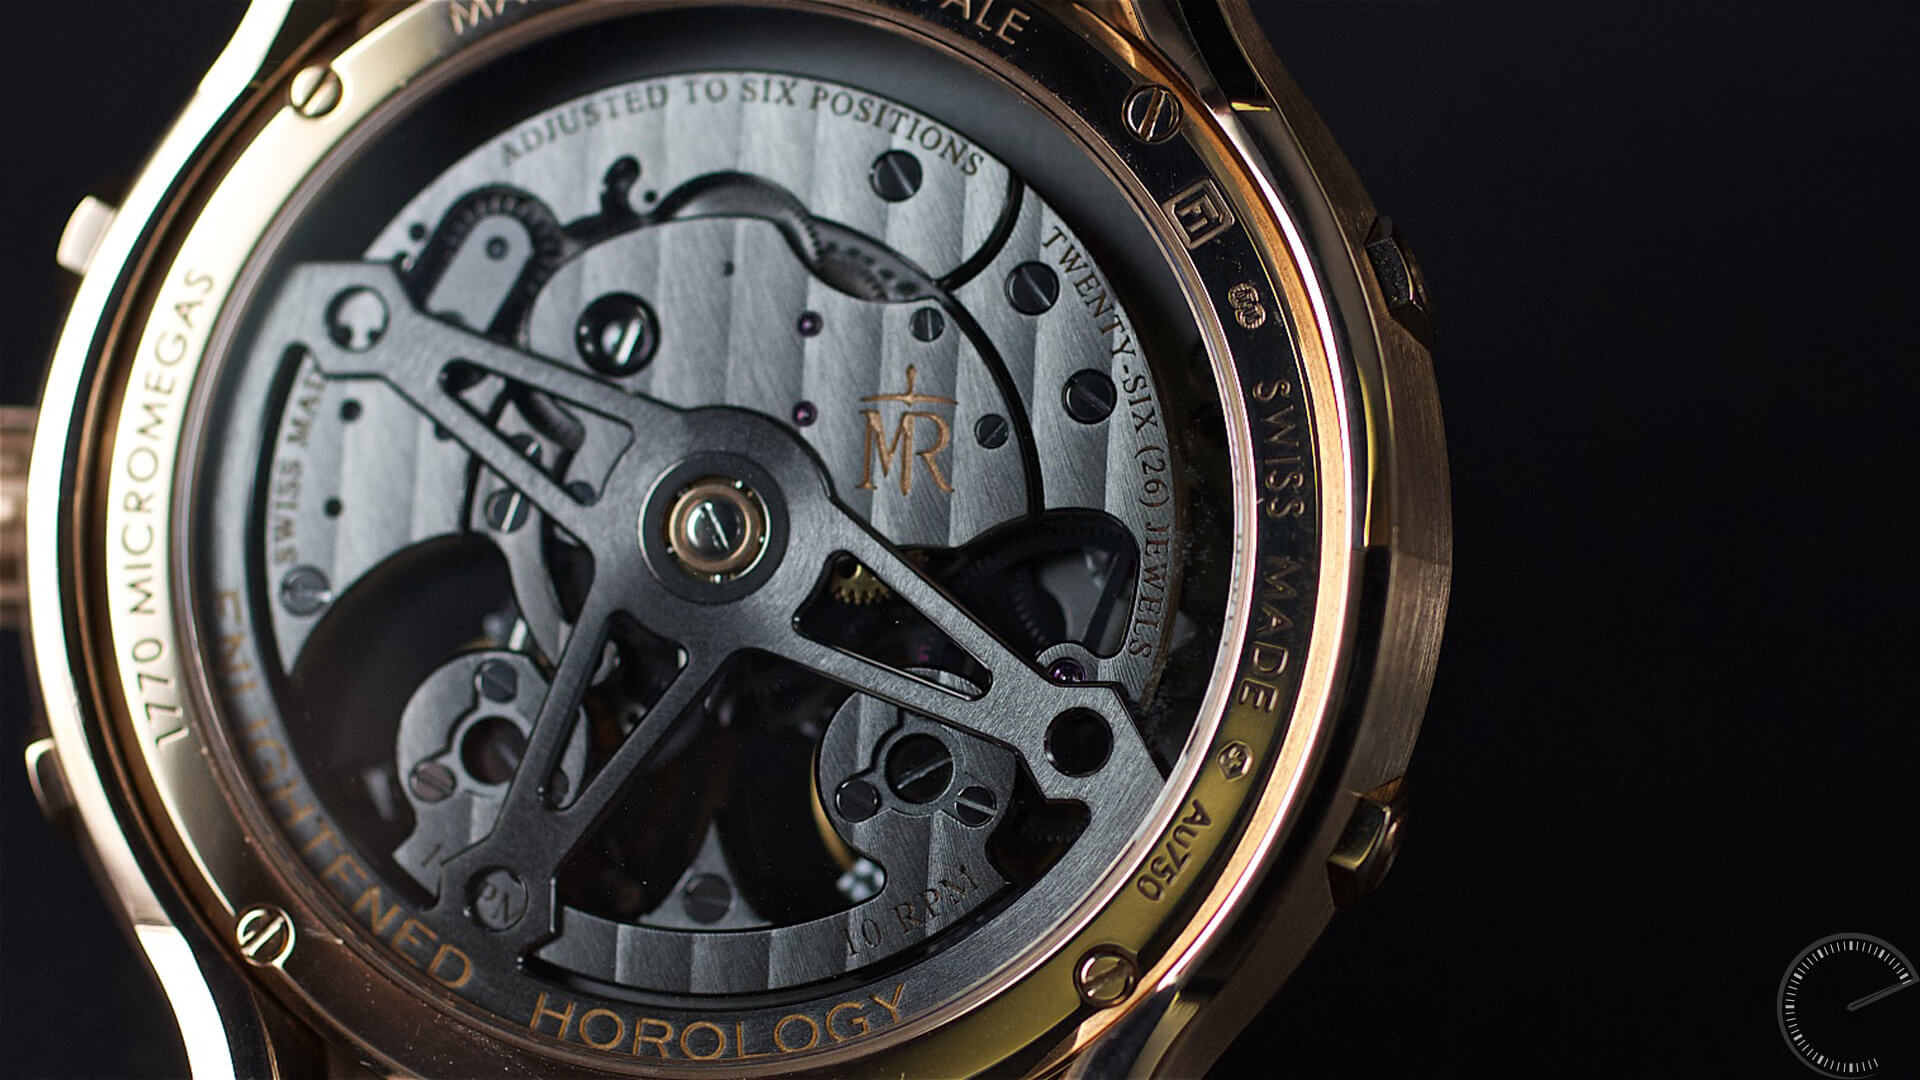 Manufacture Royale 1770 Micromegas_movement2 - ESCAPEMENT magazine - watch reviews by Angus Davies